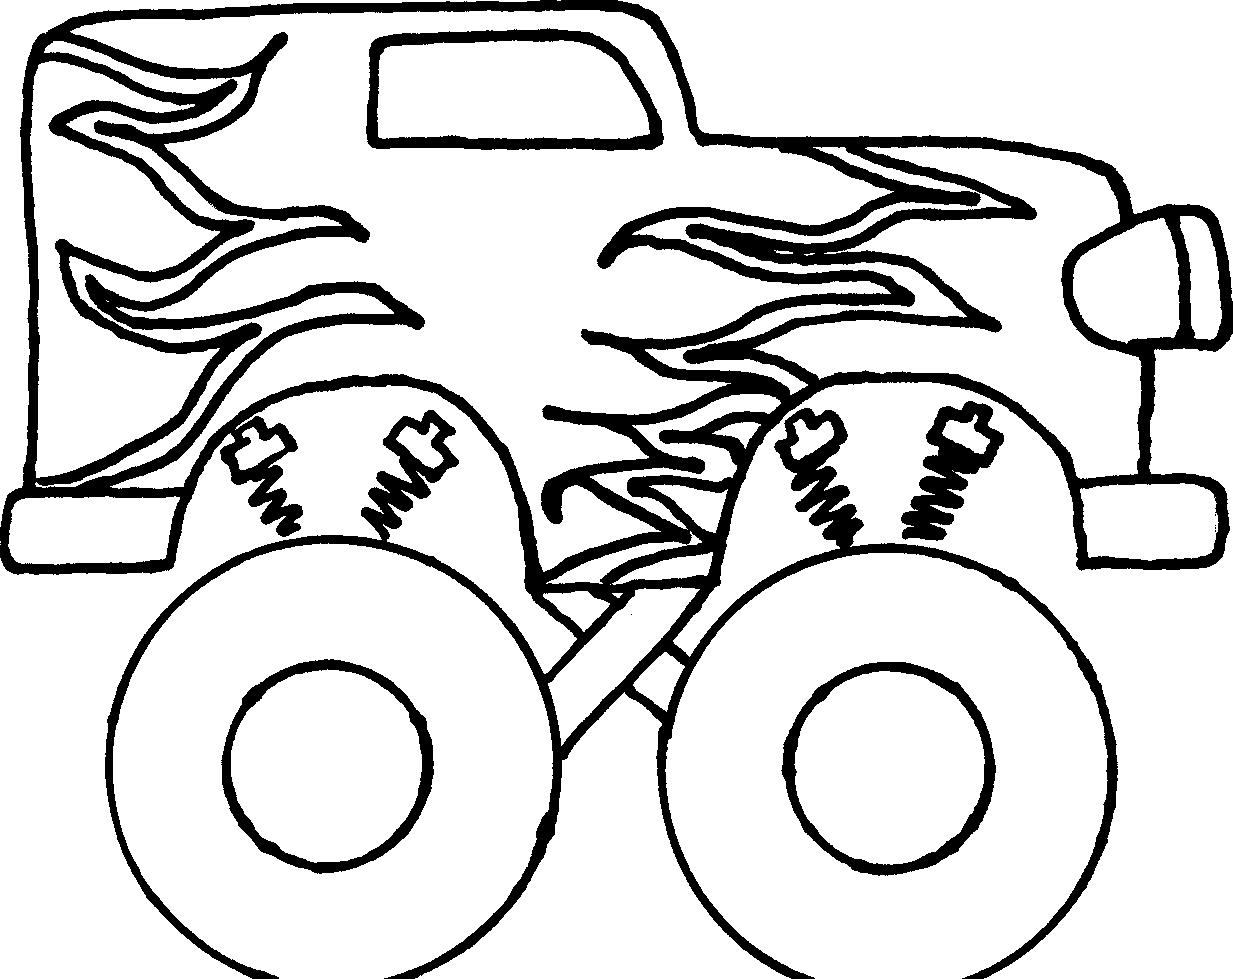 Monster Truck Clipart Black And White Free - Monster Truck Easy To Draw (1233x979), Png Download